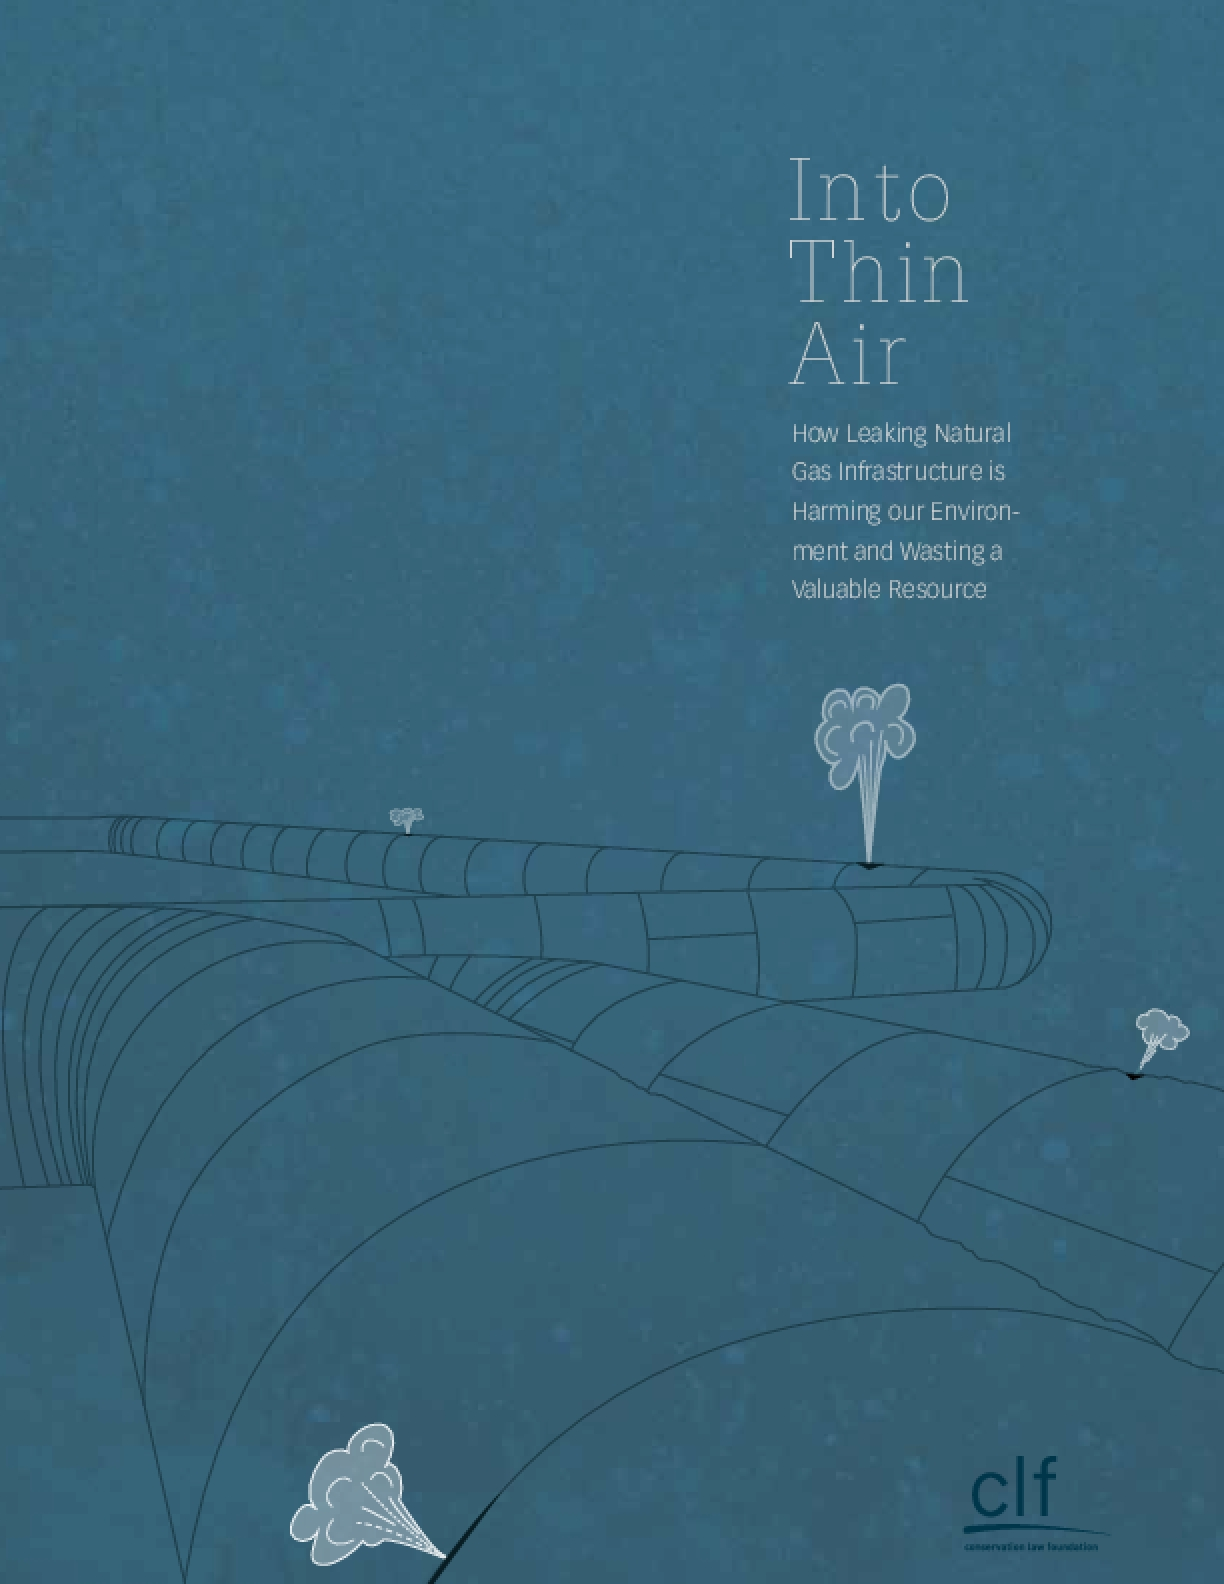 Into Thin Air: How Leaking Natural Gas Infrastructure is Harming our Environment and Wasting a Valuable Resource